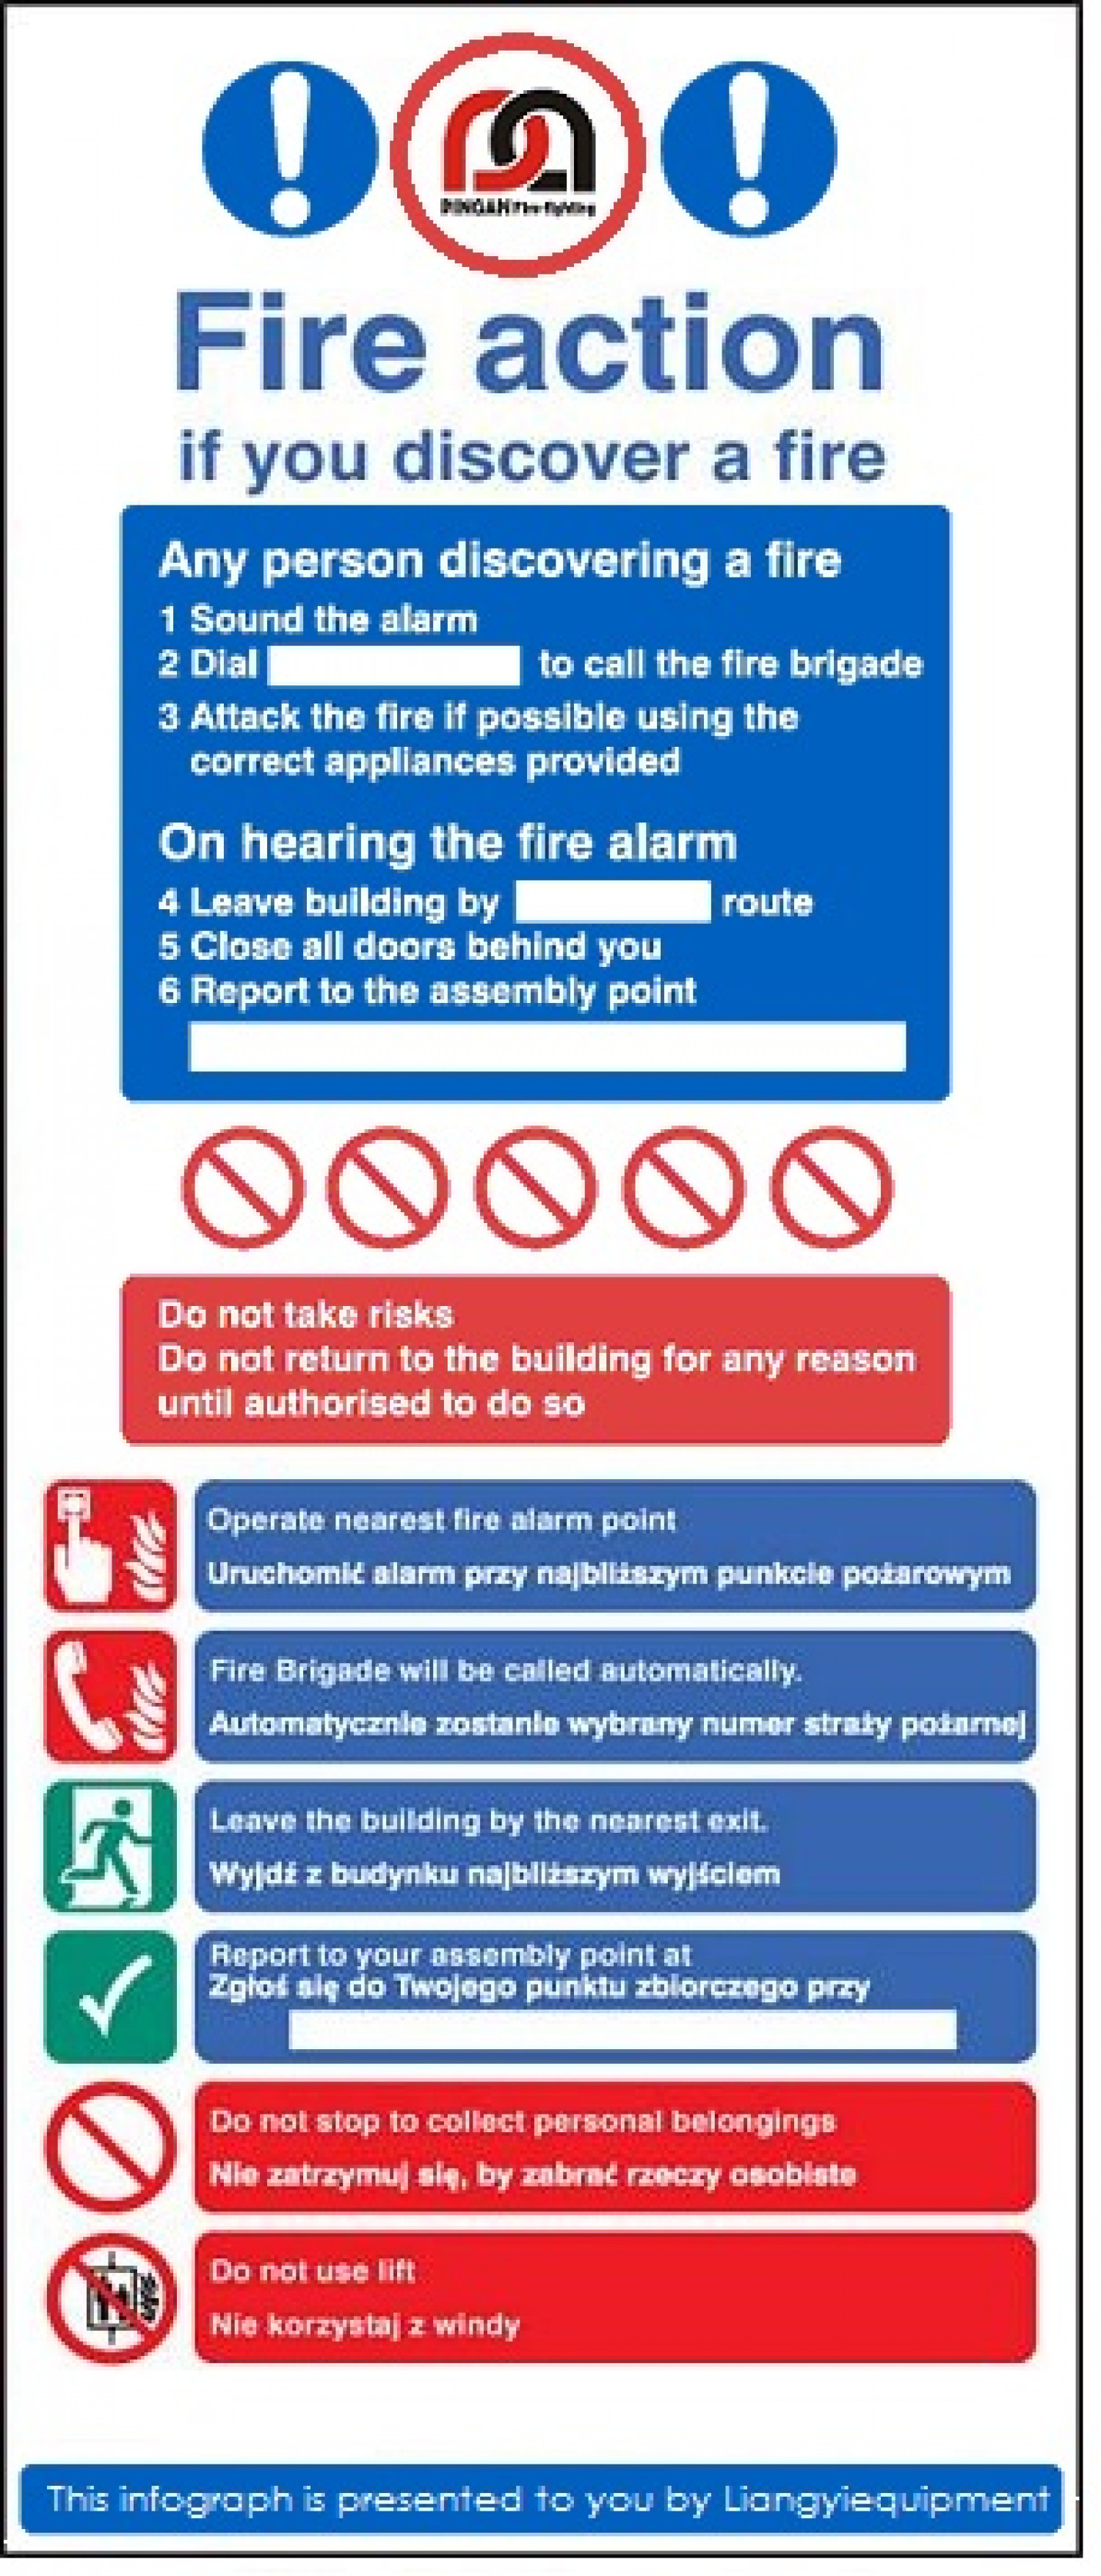 FIRE ACTION SIGNS FOR FIRE SAFETY  Infographic